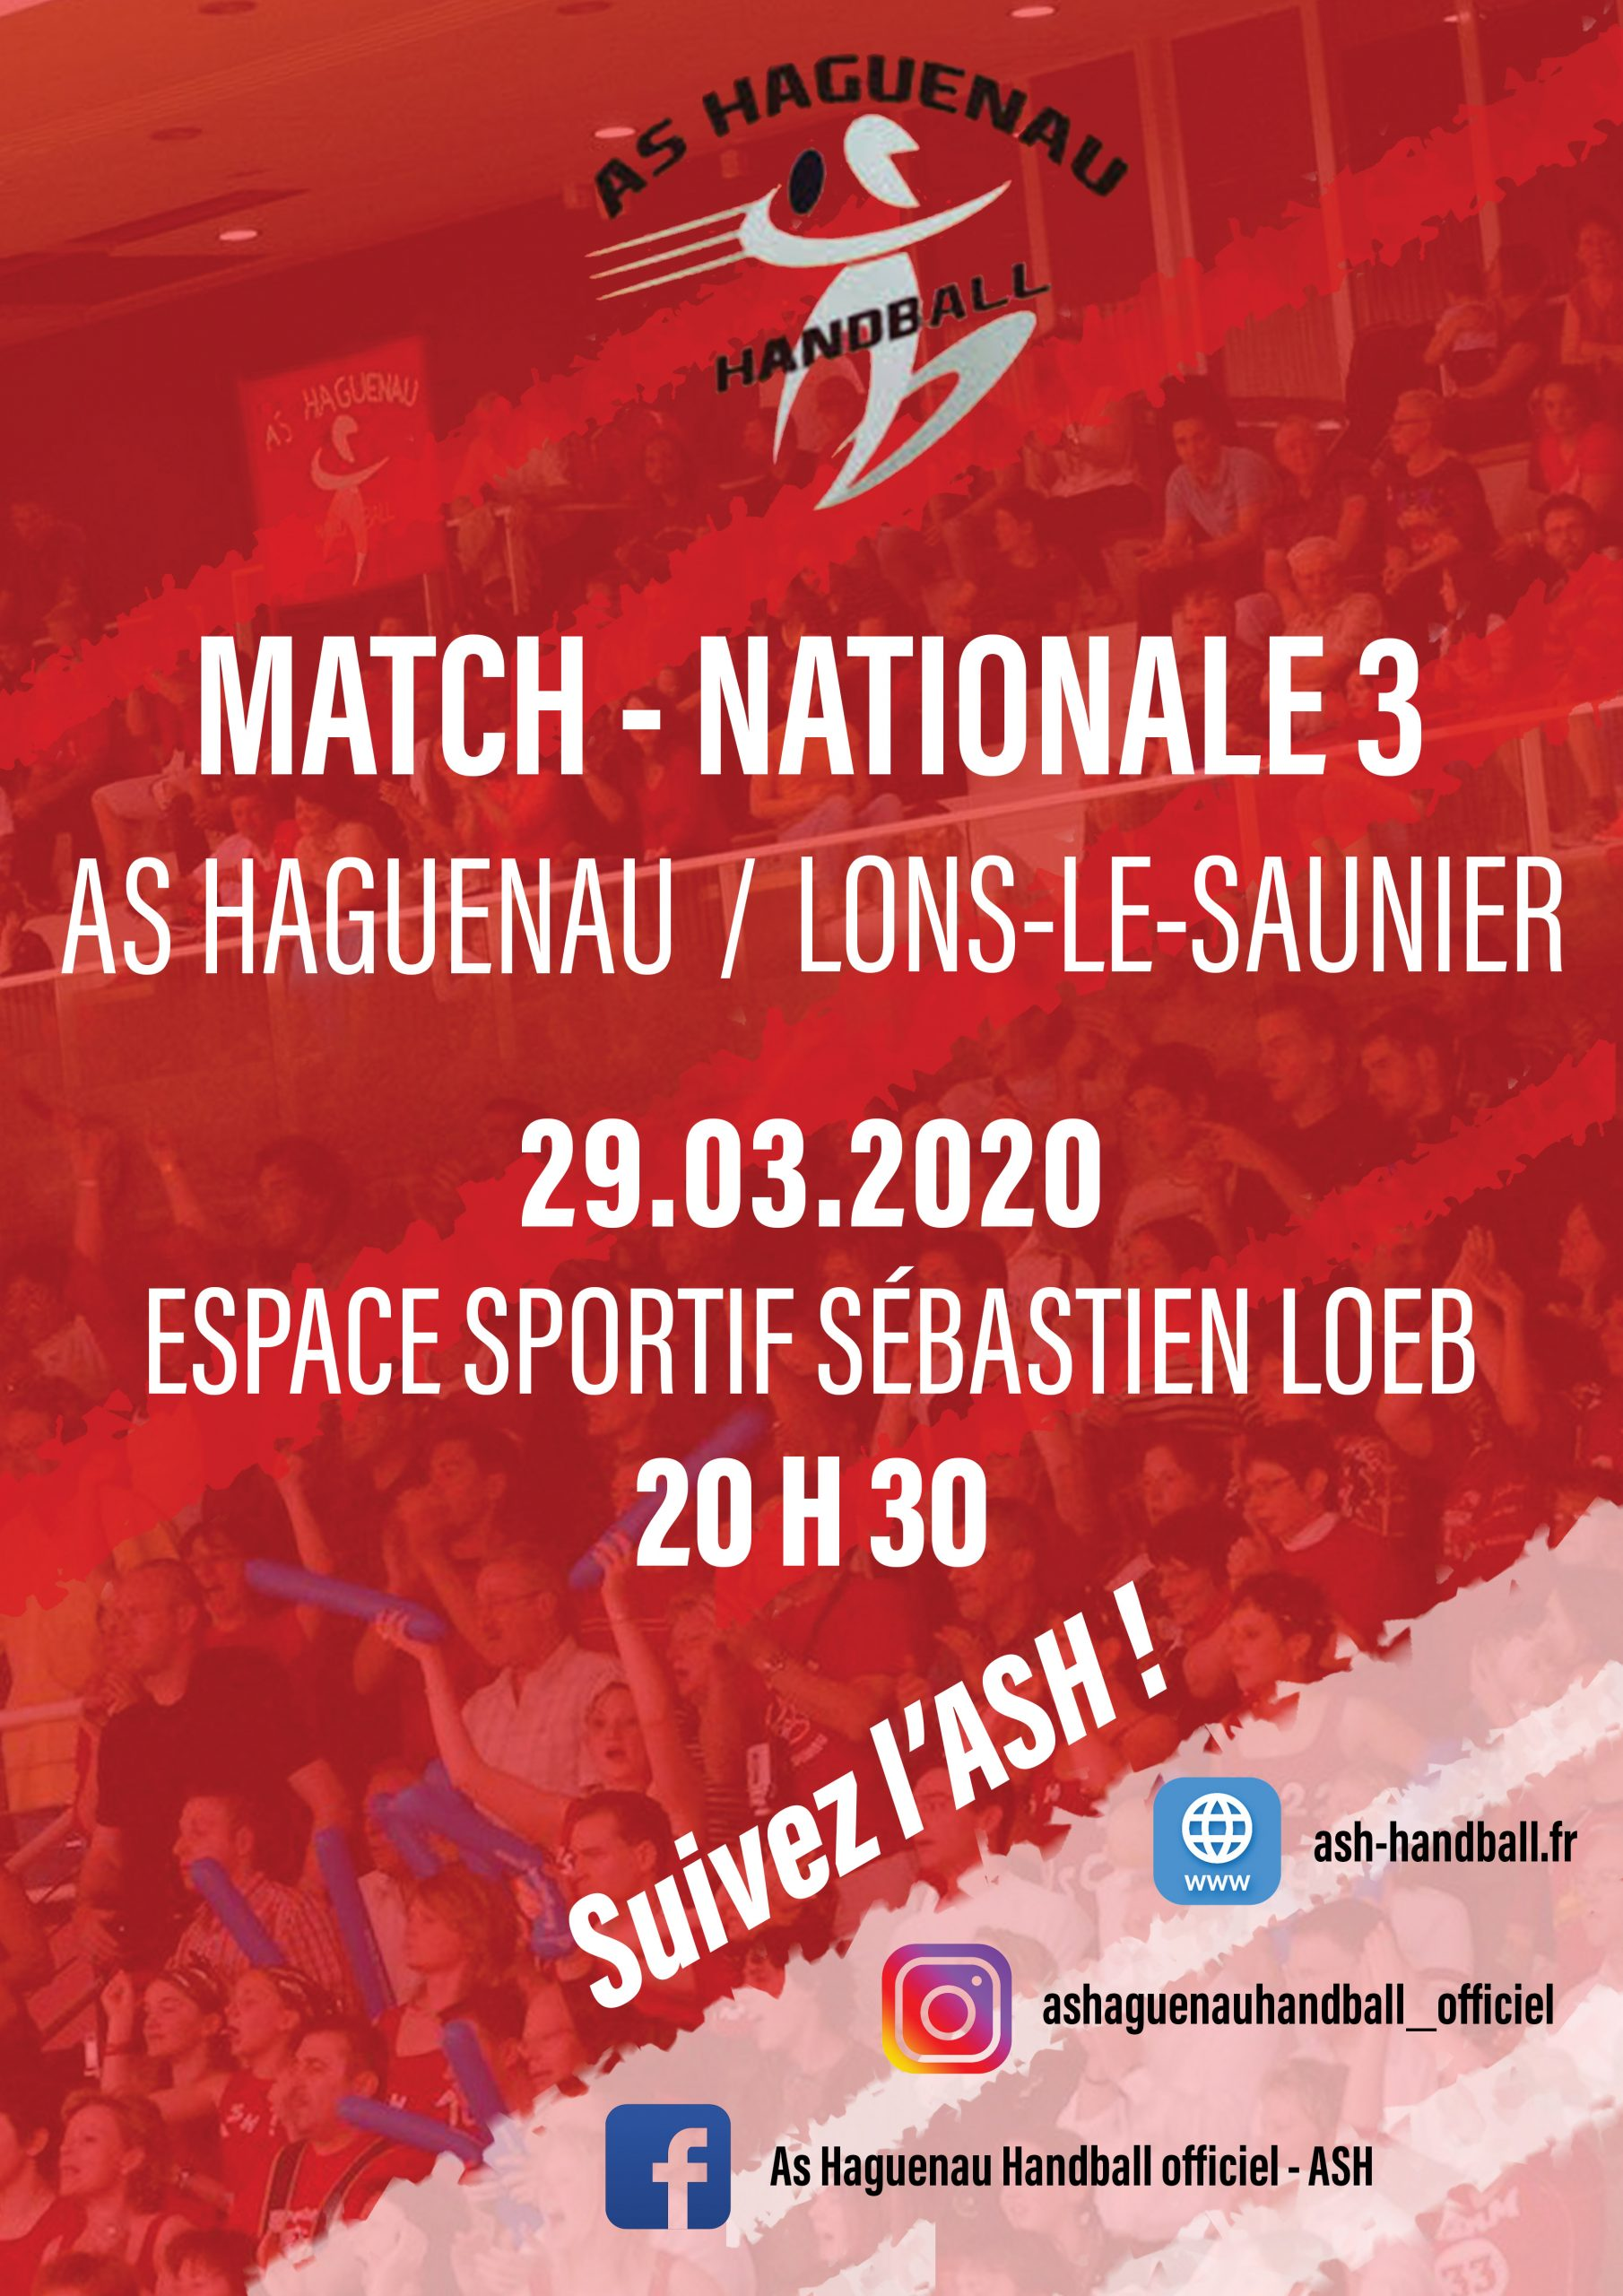 Annulé - Championnat de France National 3 de Handball